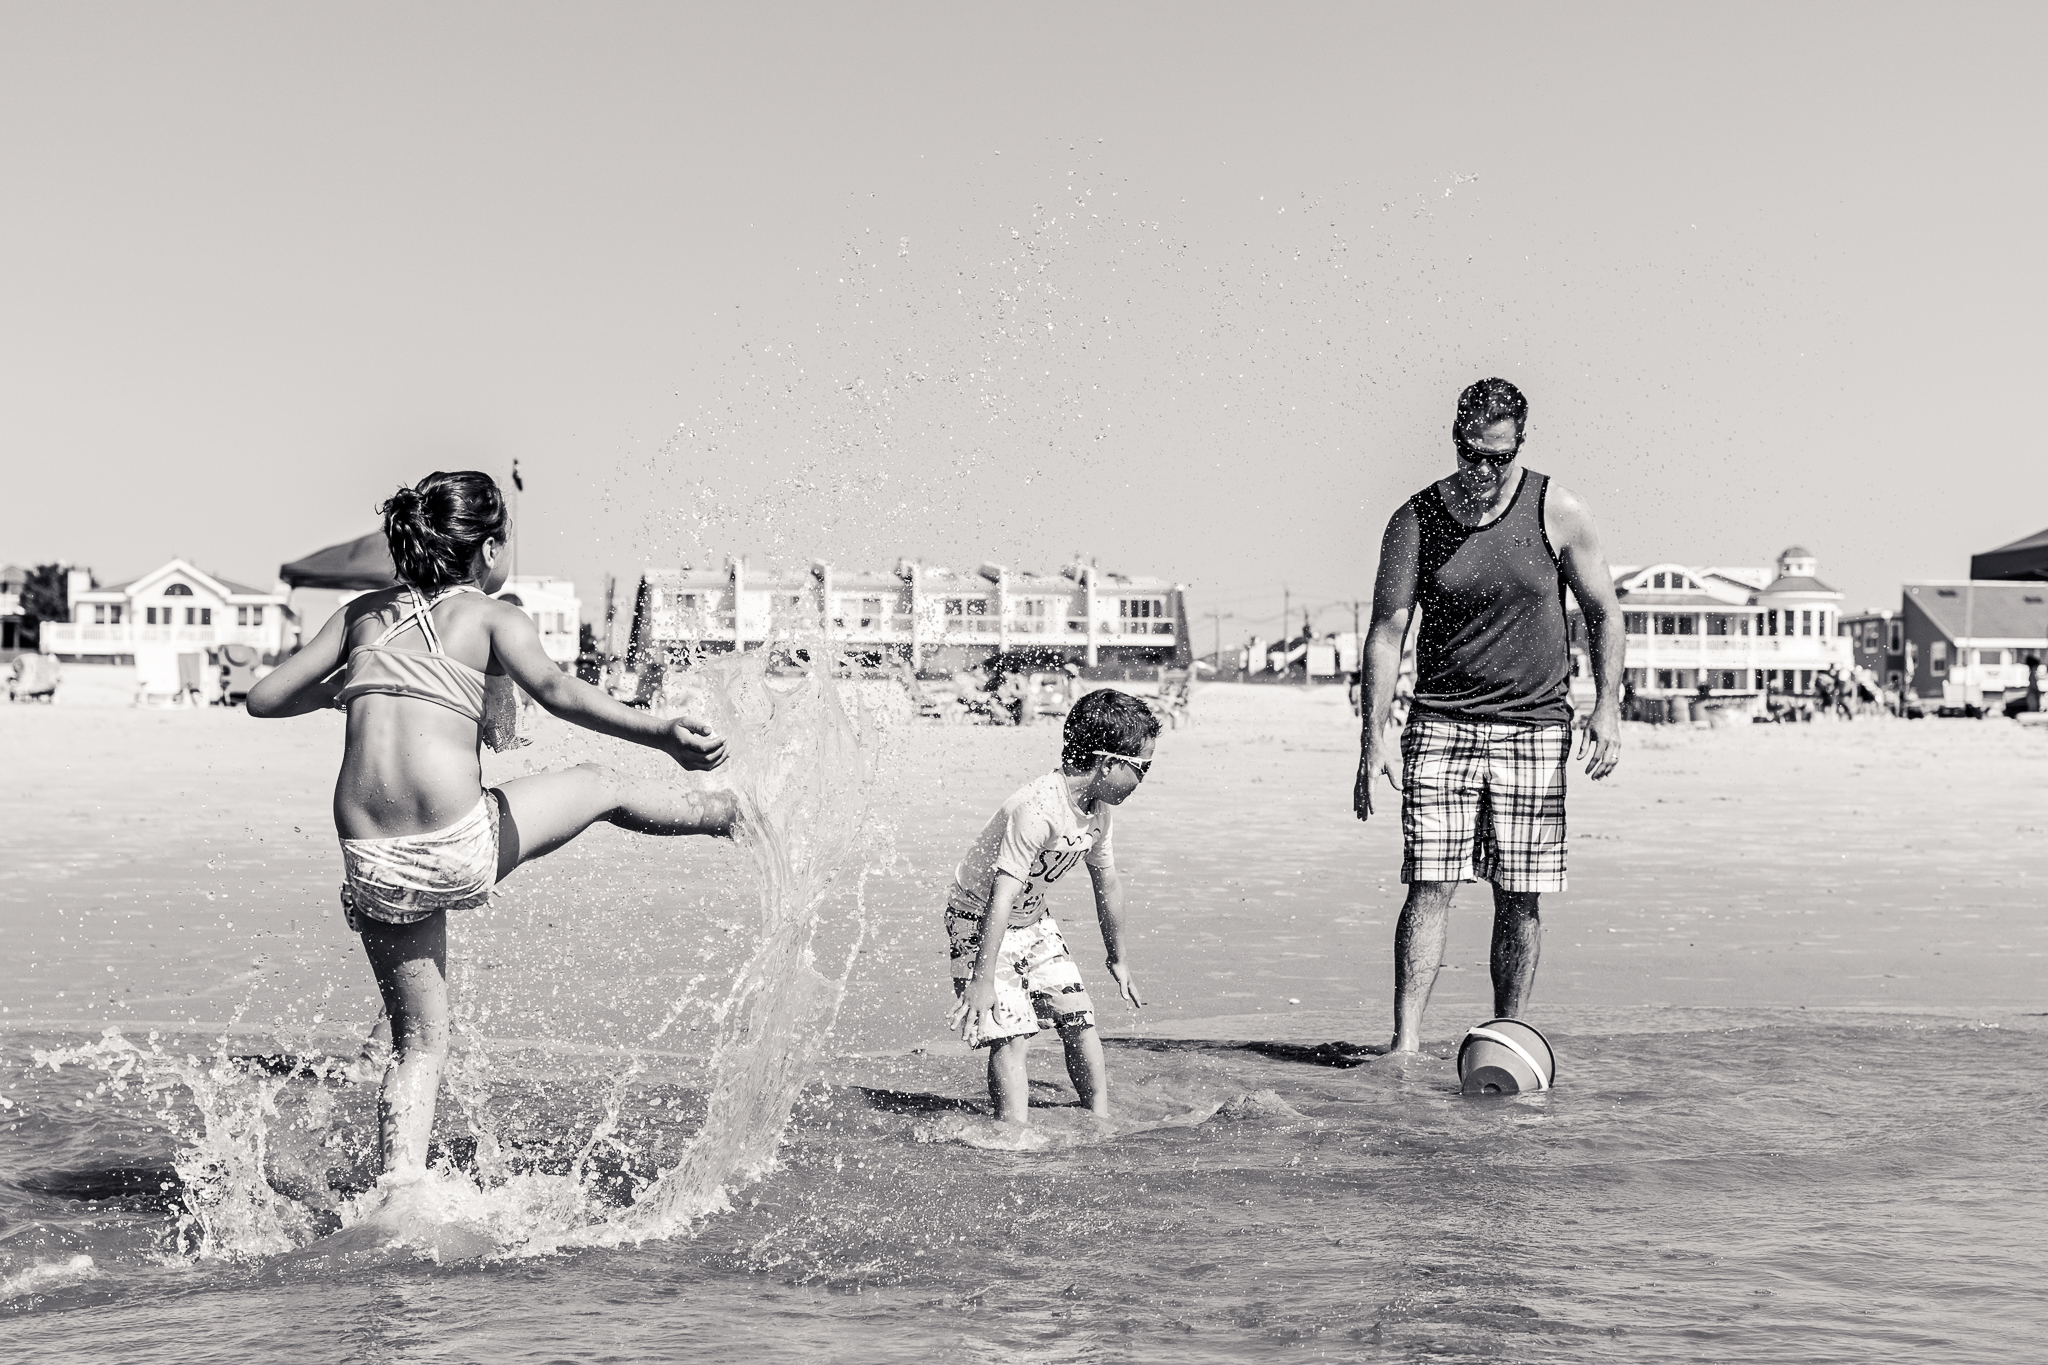 Nancy Elizabeth Photography | Jersey Shore Documentary Beach Photographer | Kicking water to Splash Family